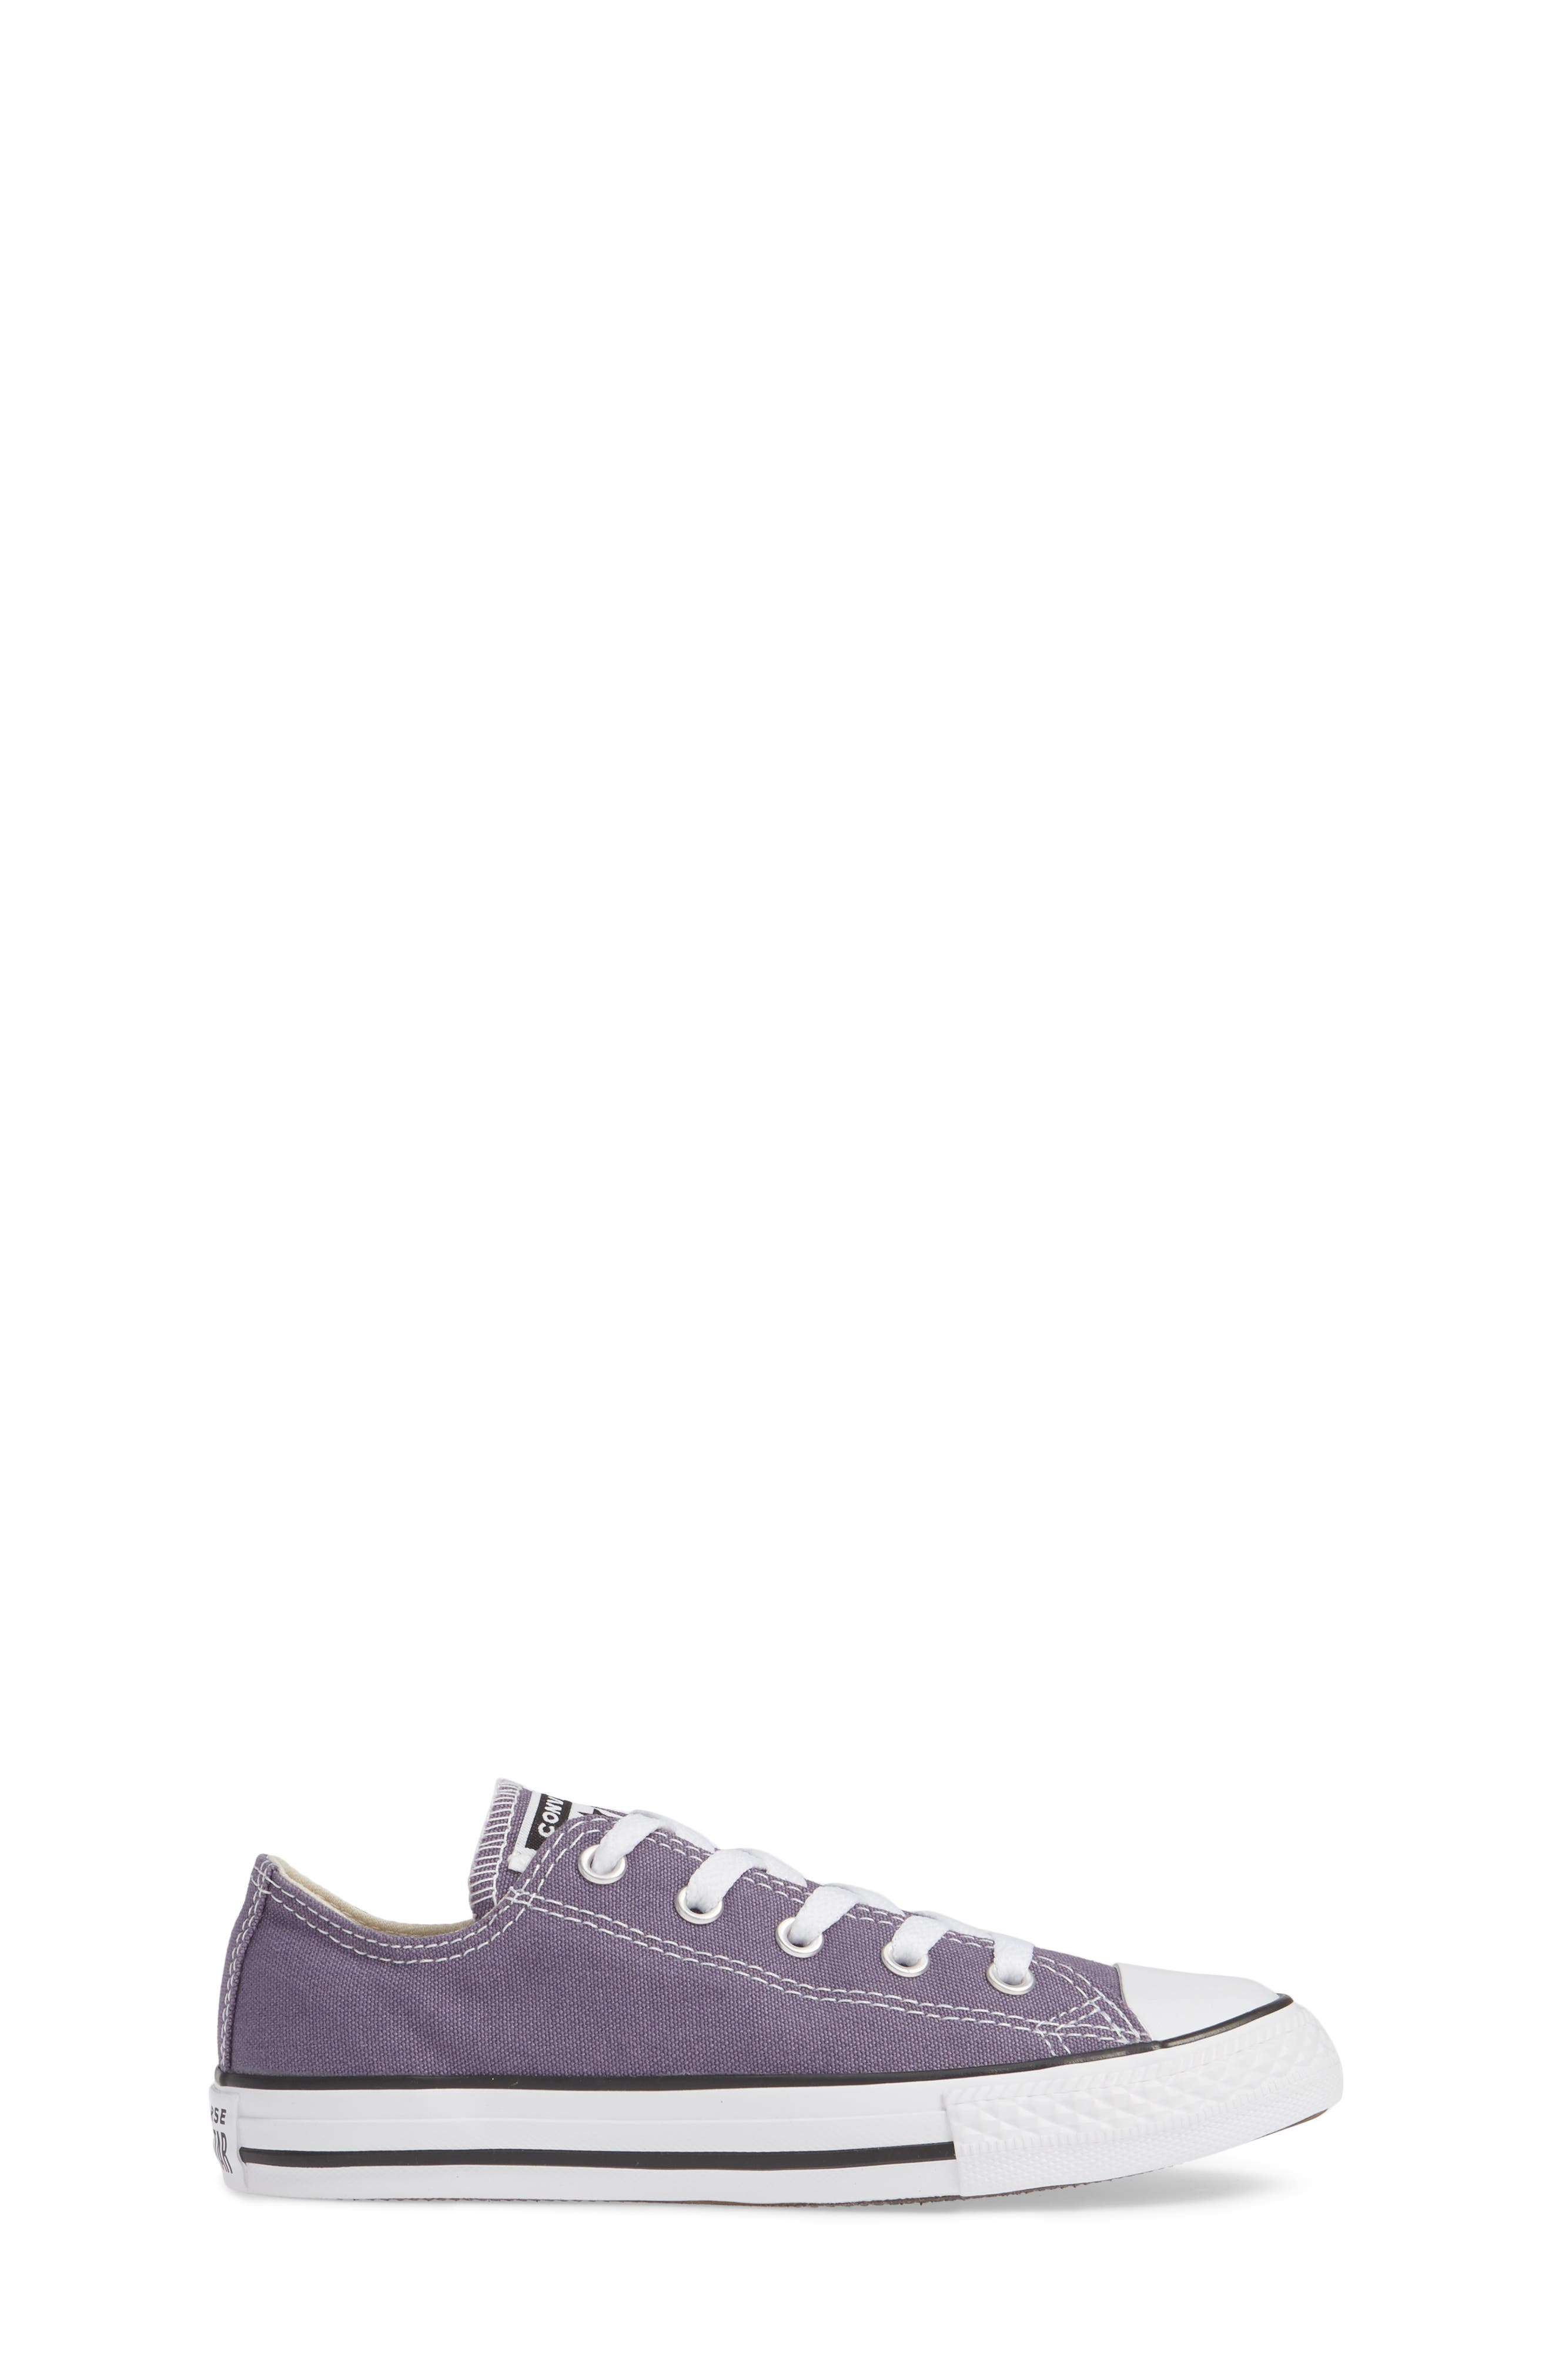 CONVERSE, Chuck Taylor<sup>®</sup> Sneaker, Alternate thumbnail 3, color, MOODY PURPLE/ NATURAL IVORY